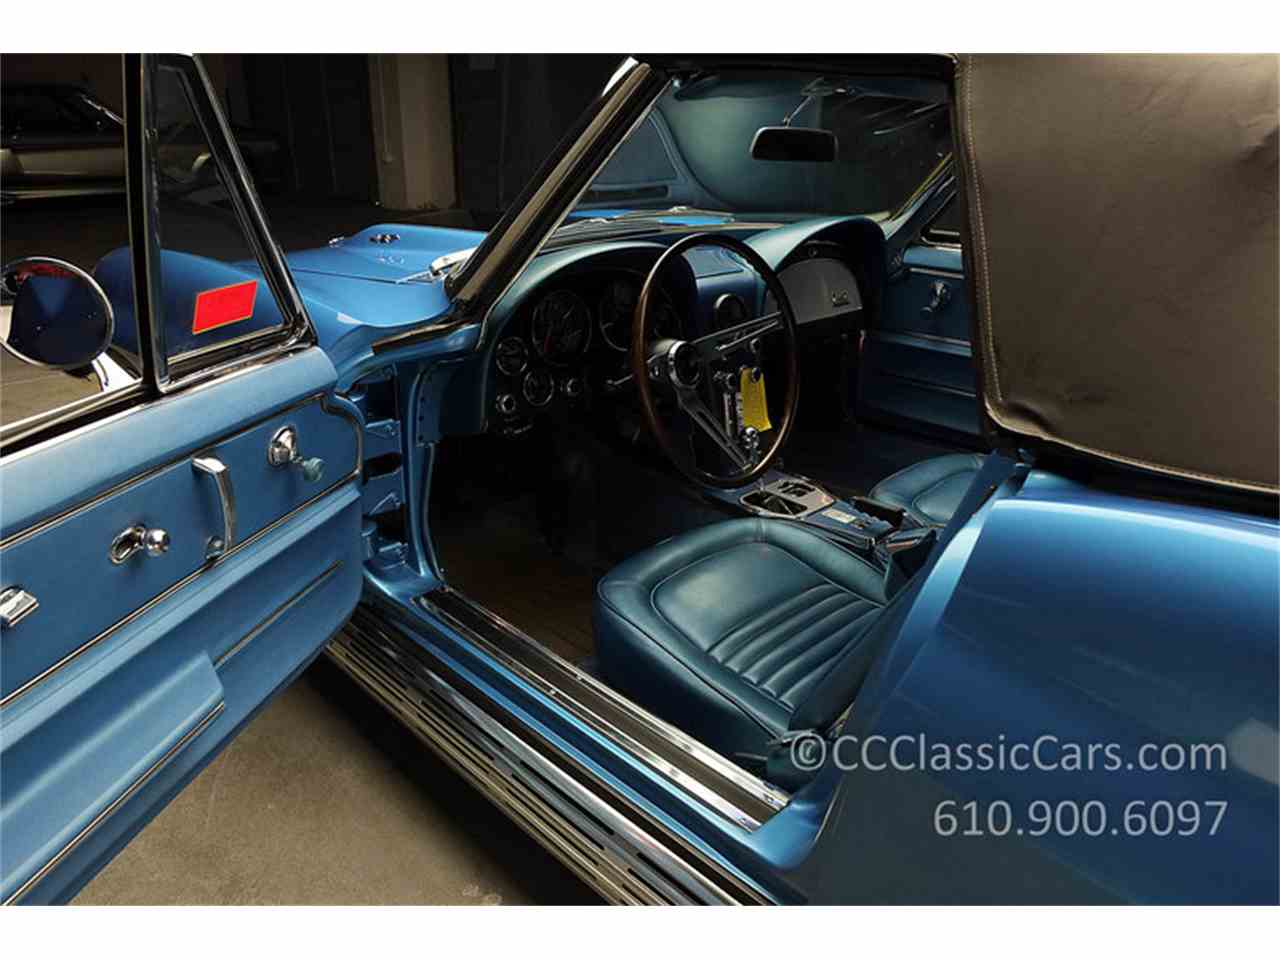 Large Picture of '67 Corvette located in West Chester Pennsylvania Auction Vehicle - JV9S